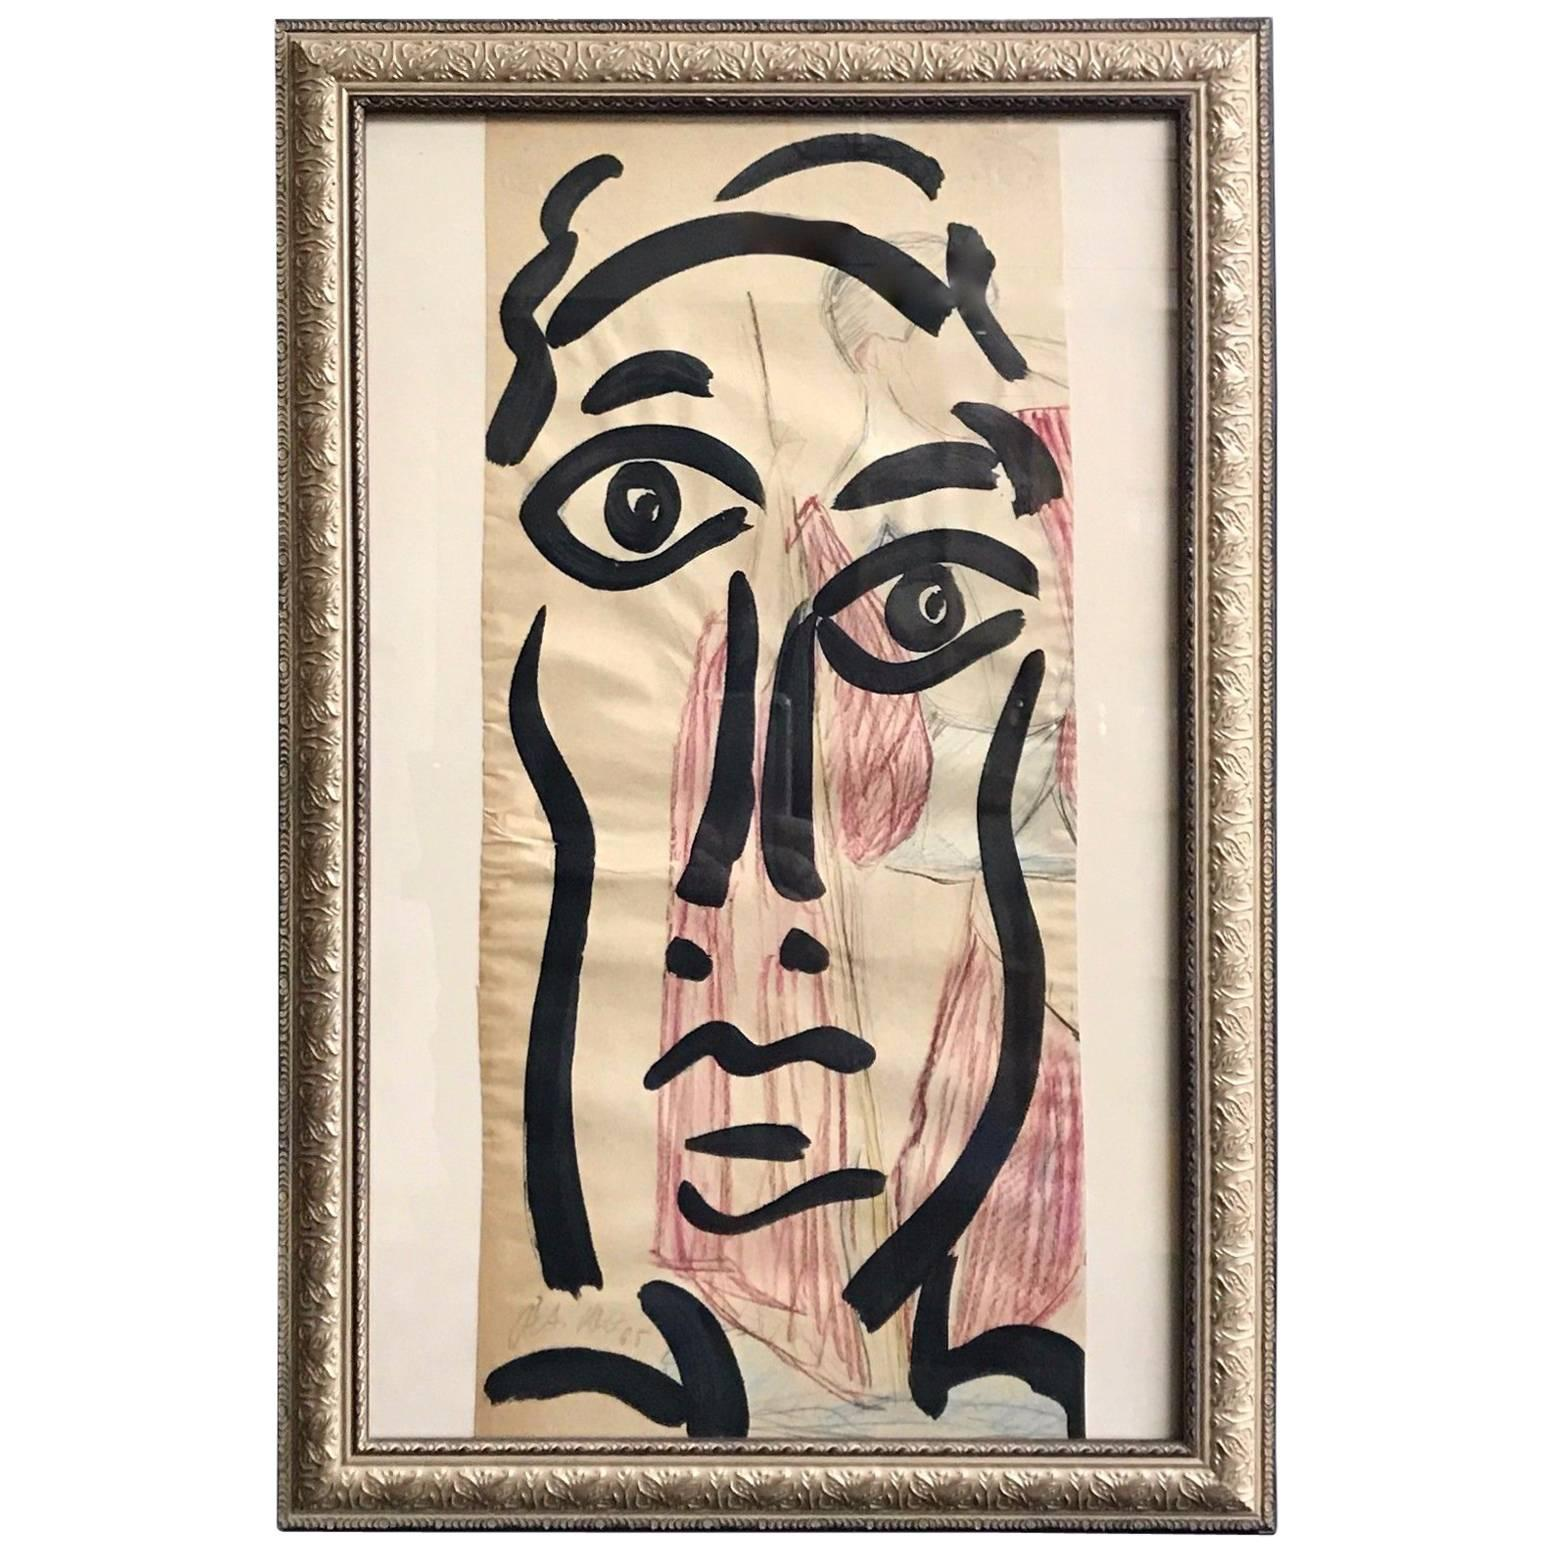 Peter Keil Mid-Century Modern Abstract Face Painting